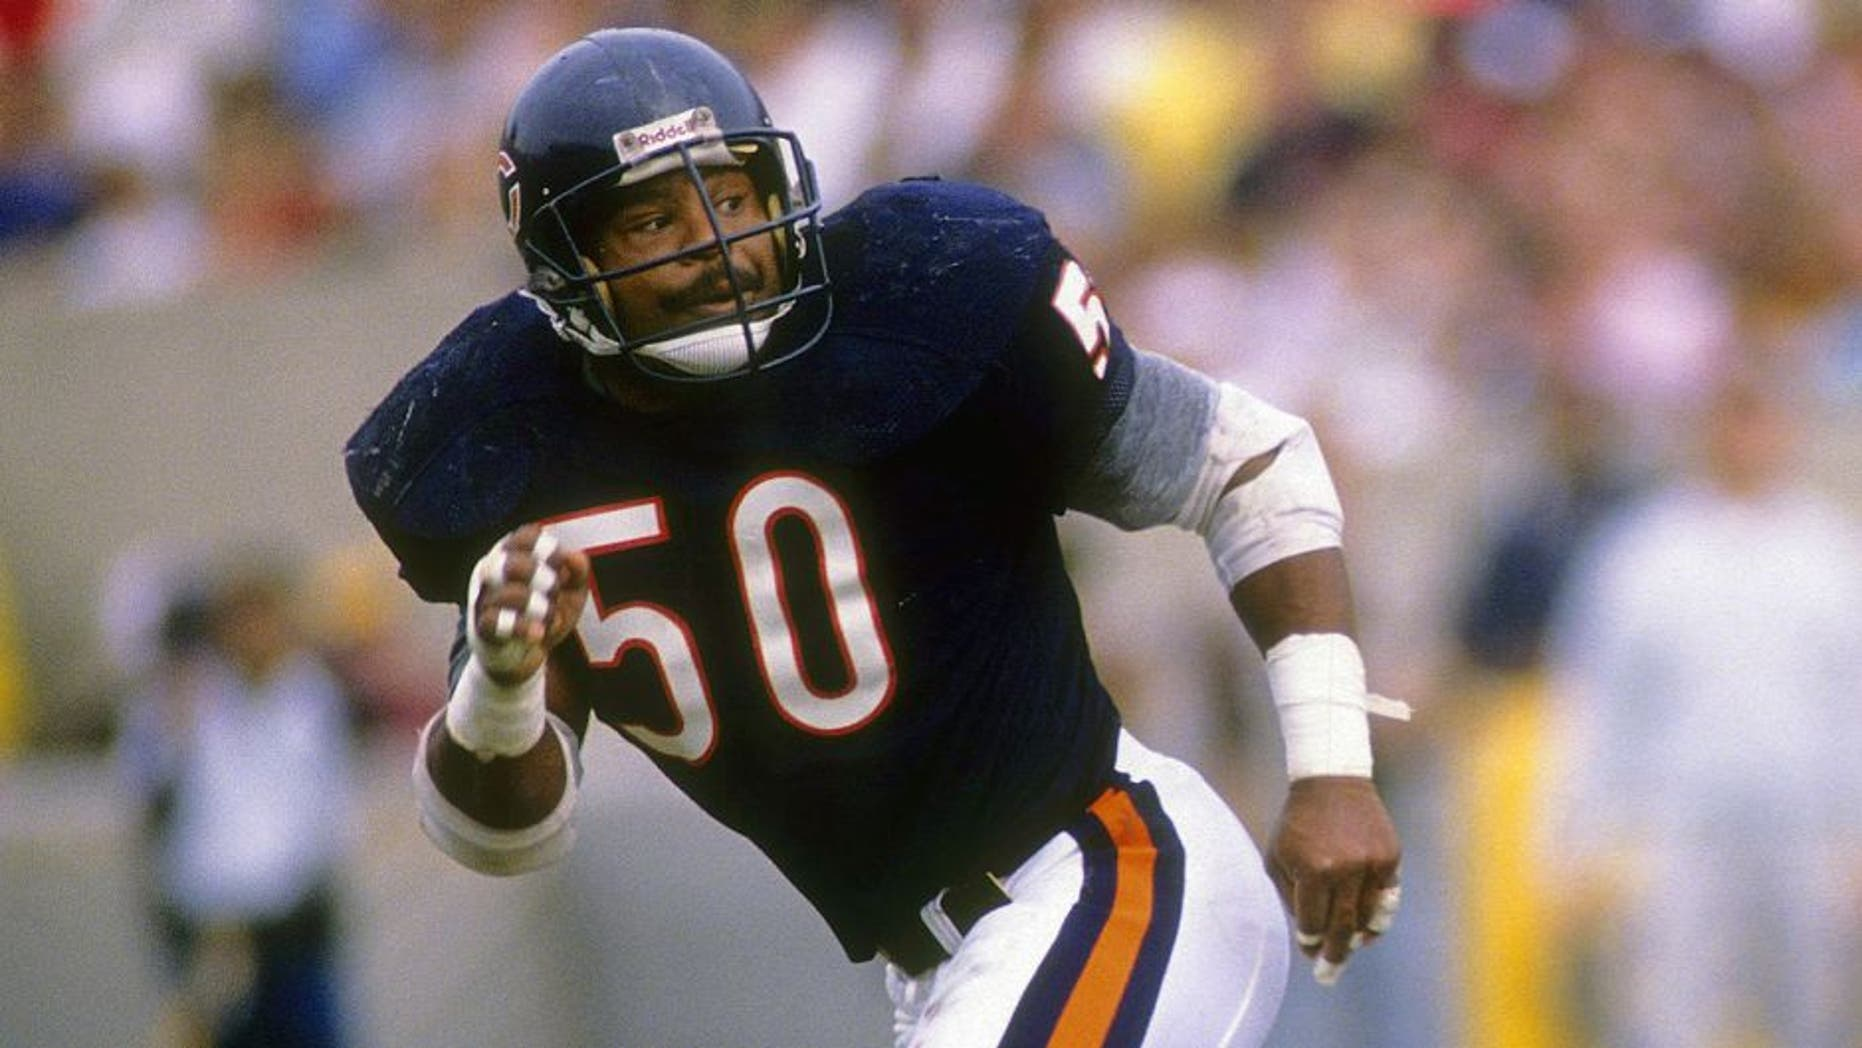 CHICAGO, IL - CIRCA 1980's: Middle Linebacker Mike Singletary #50 of the Chicago Bears in action during a circa late 1980's NFL football game at Soldier Field in Chicago, Illinois. Singletary played for the Bears from 1981-92. (Photo by Focus on Sport/Getty Images)